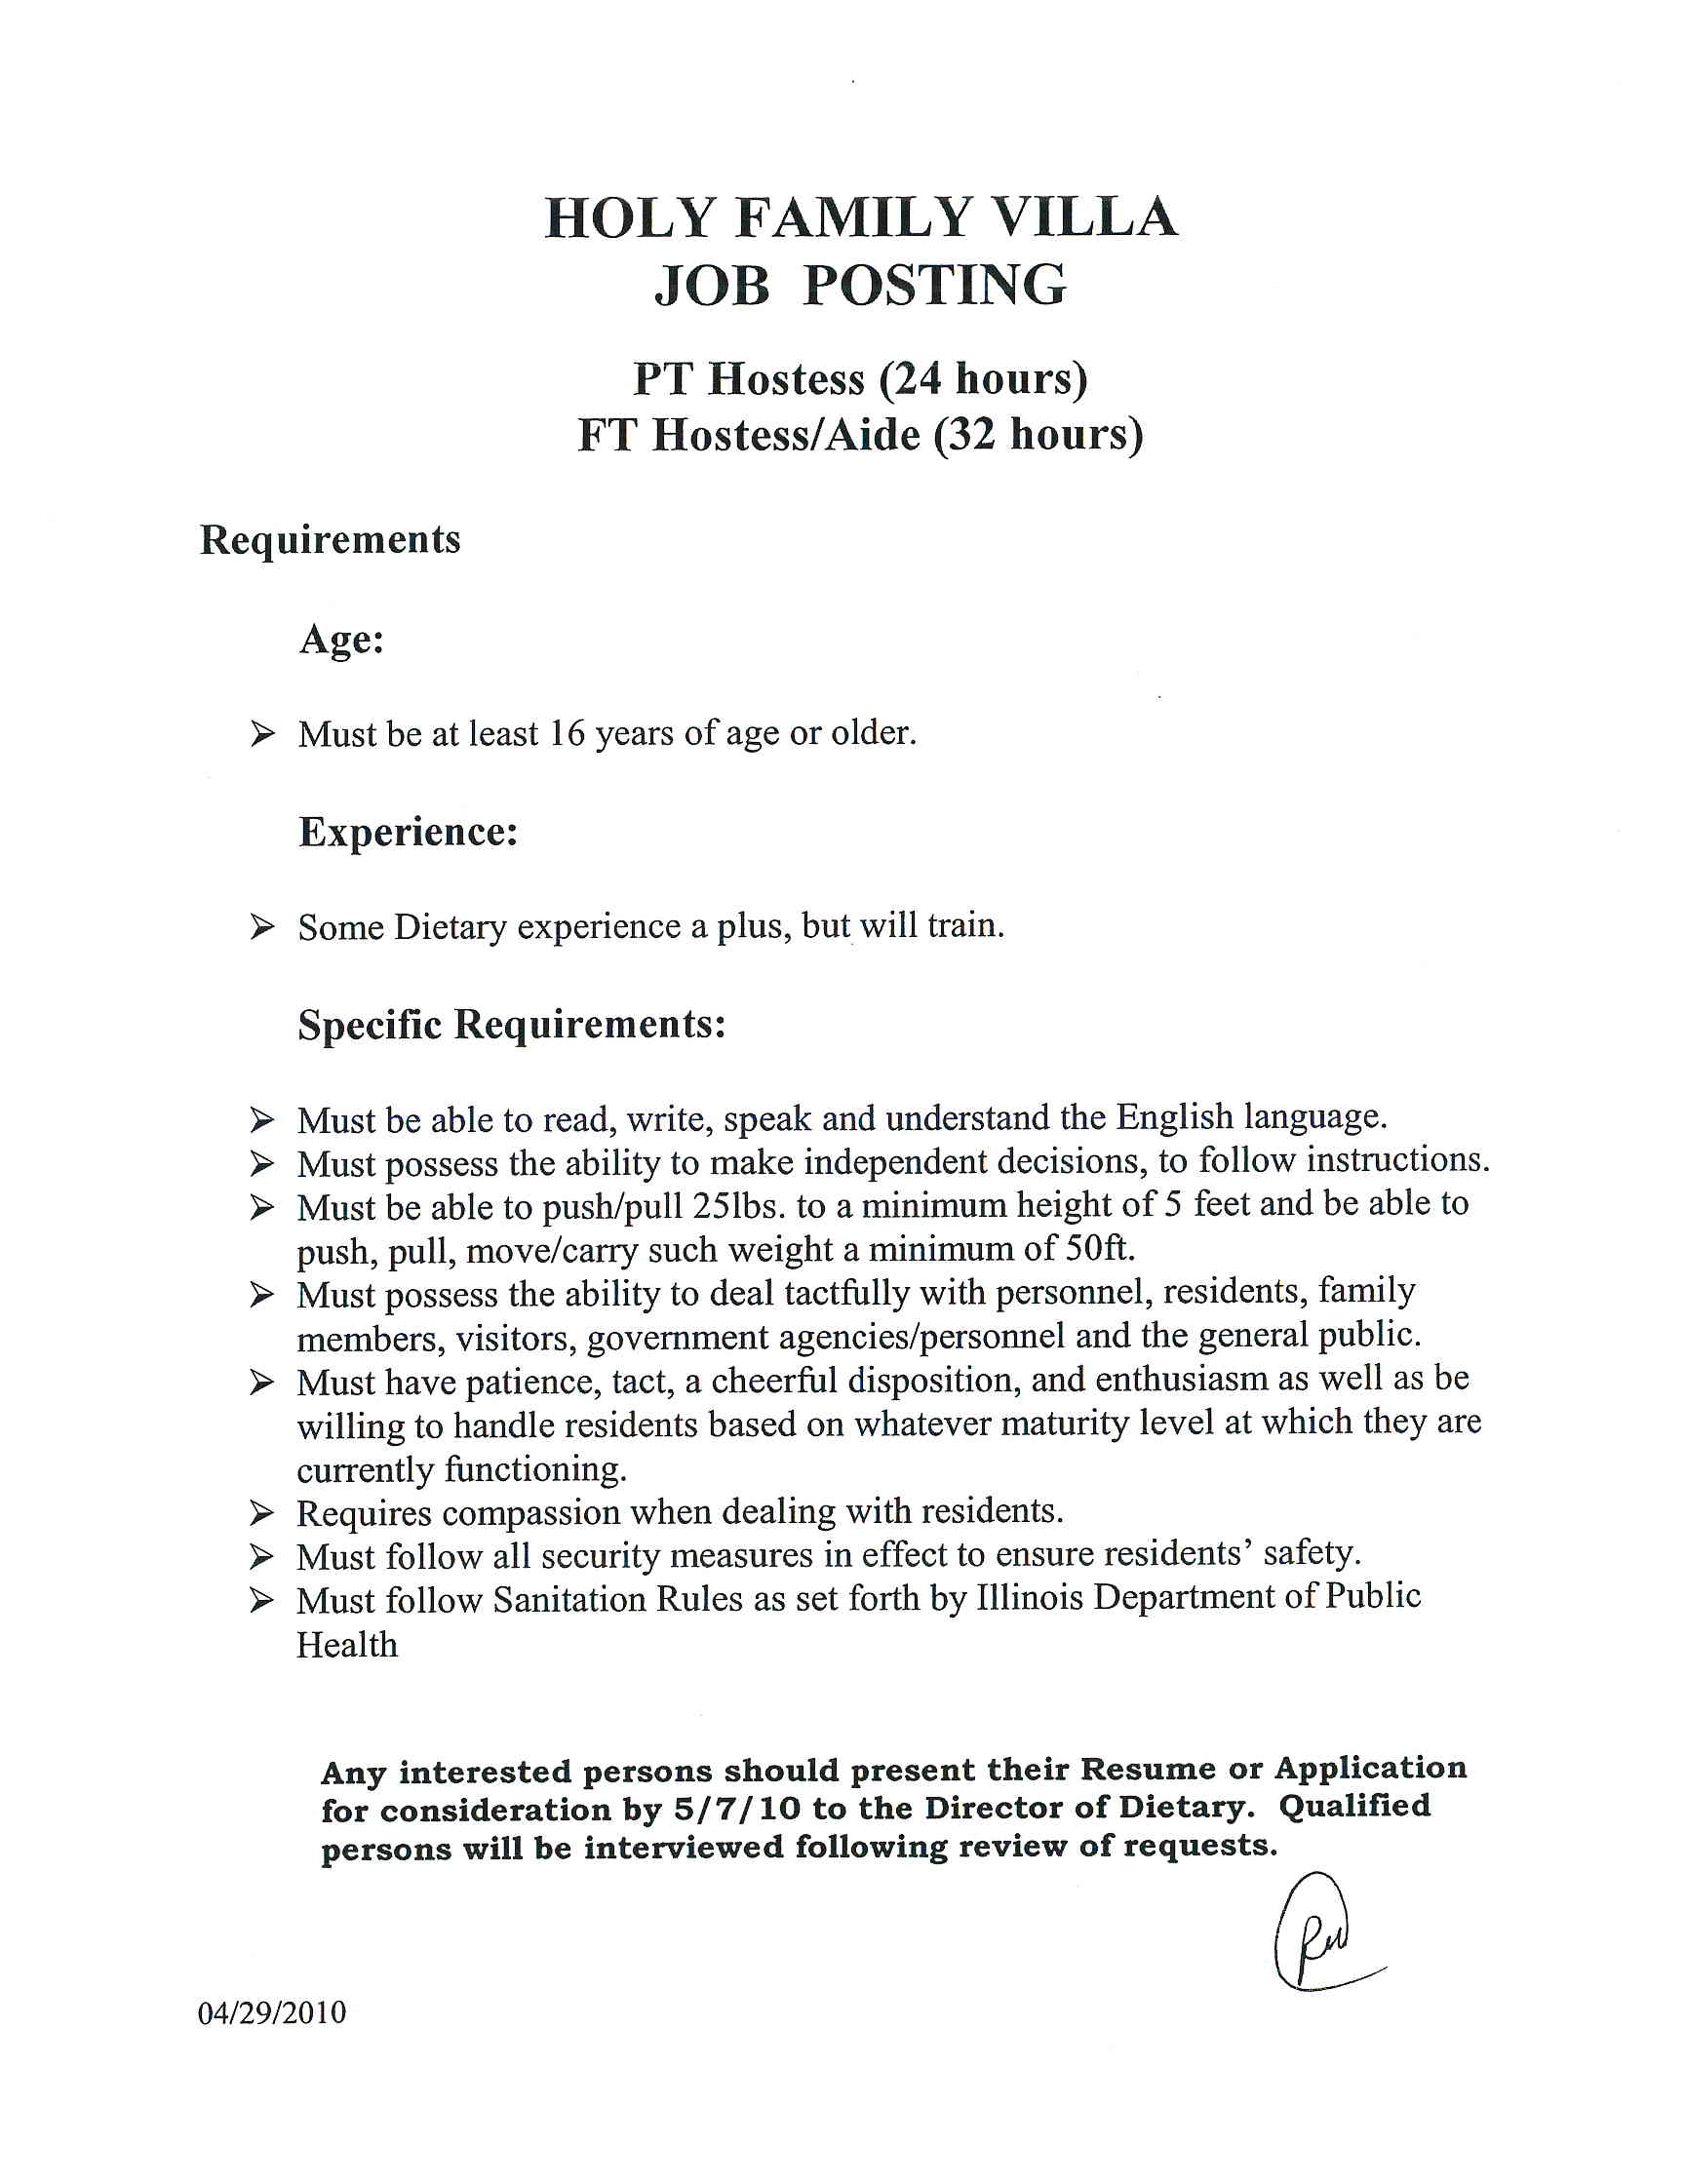 Resume For Dietary Aide Dietary Aide Job Description For Resume